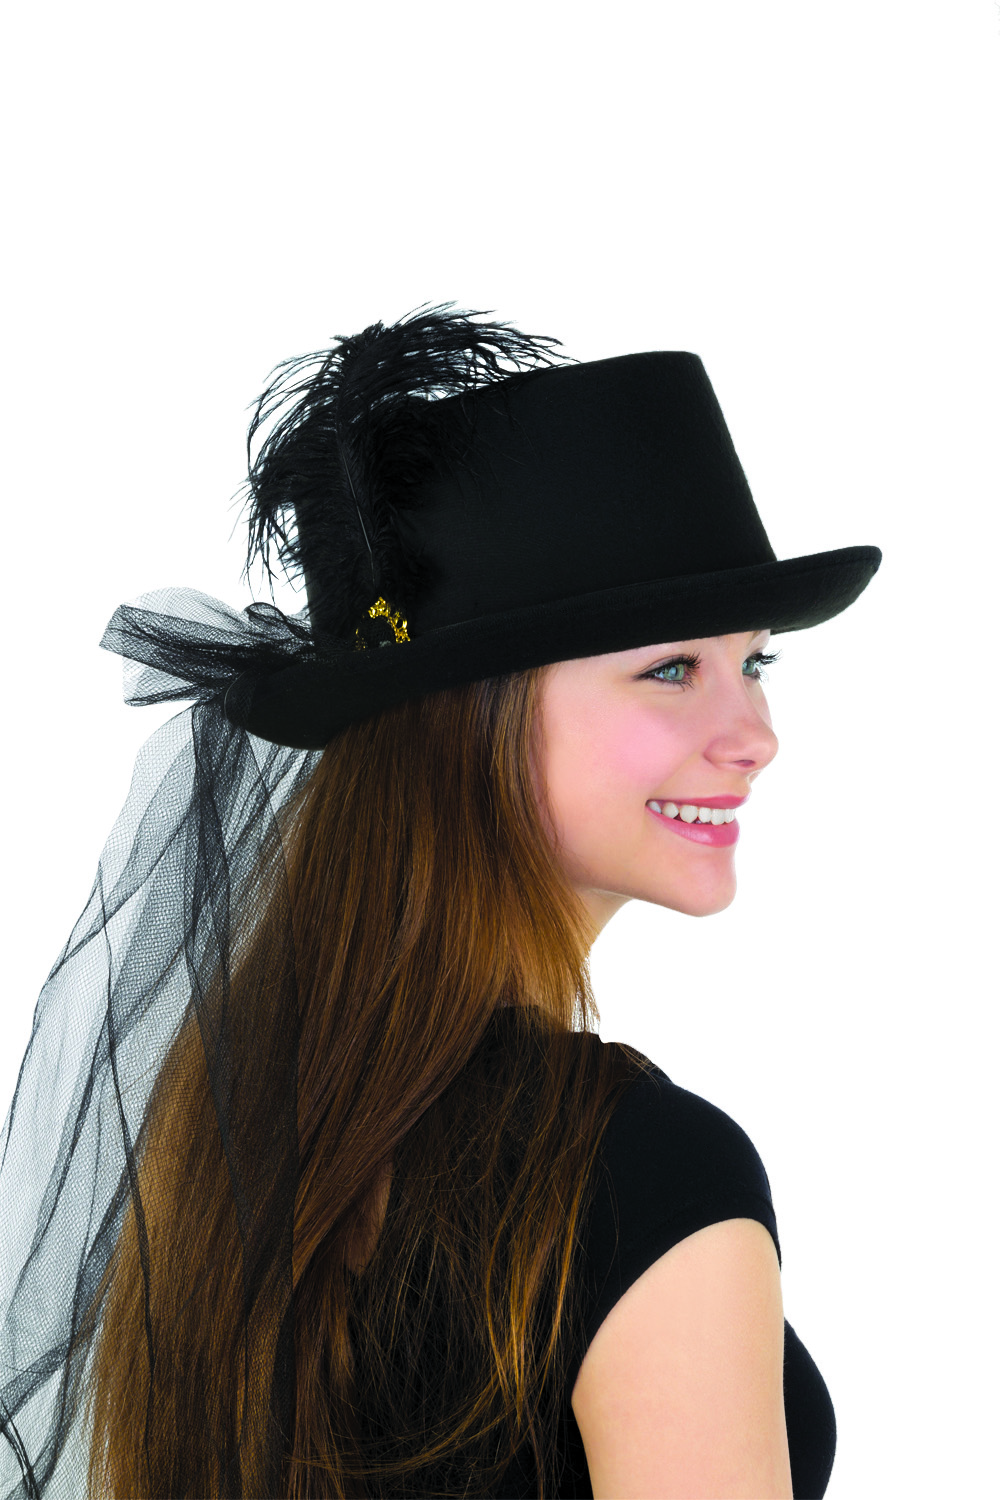 Details about Womens Deluxe Black Felt Top Hat With Plume   Veil Halloween  Costume Accessory fb15b487302